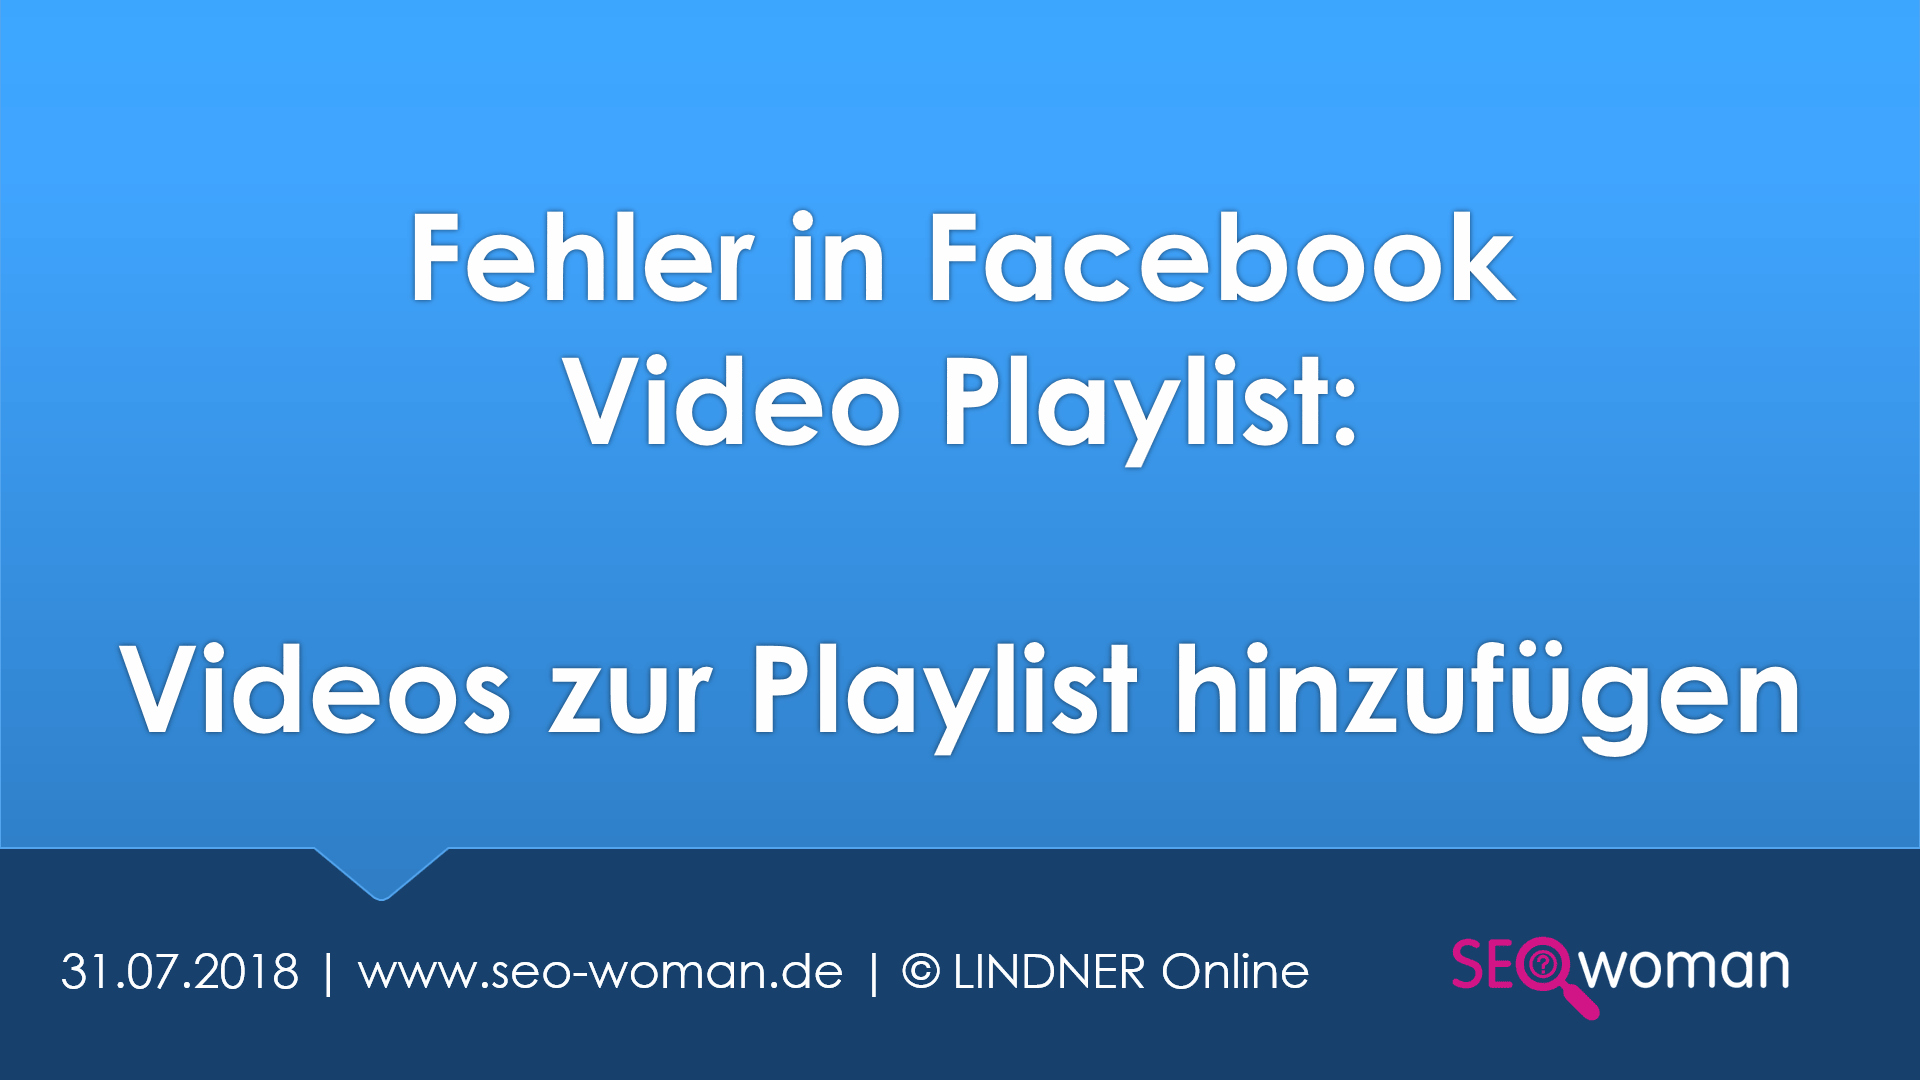 Fehler in Facebook Video Playlist